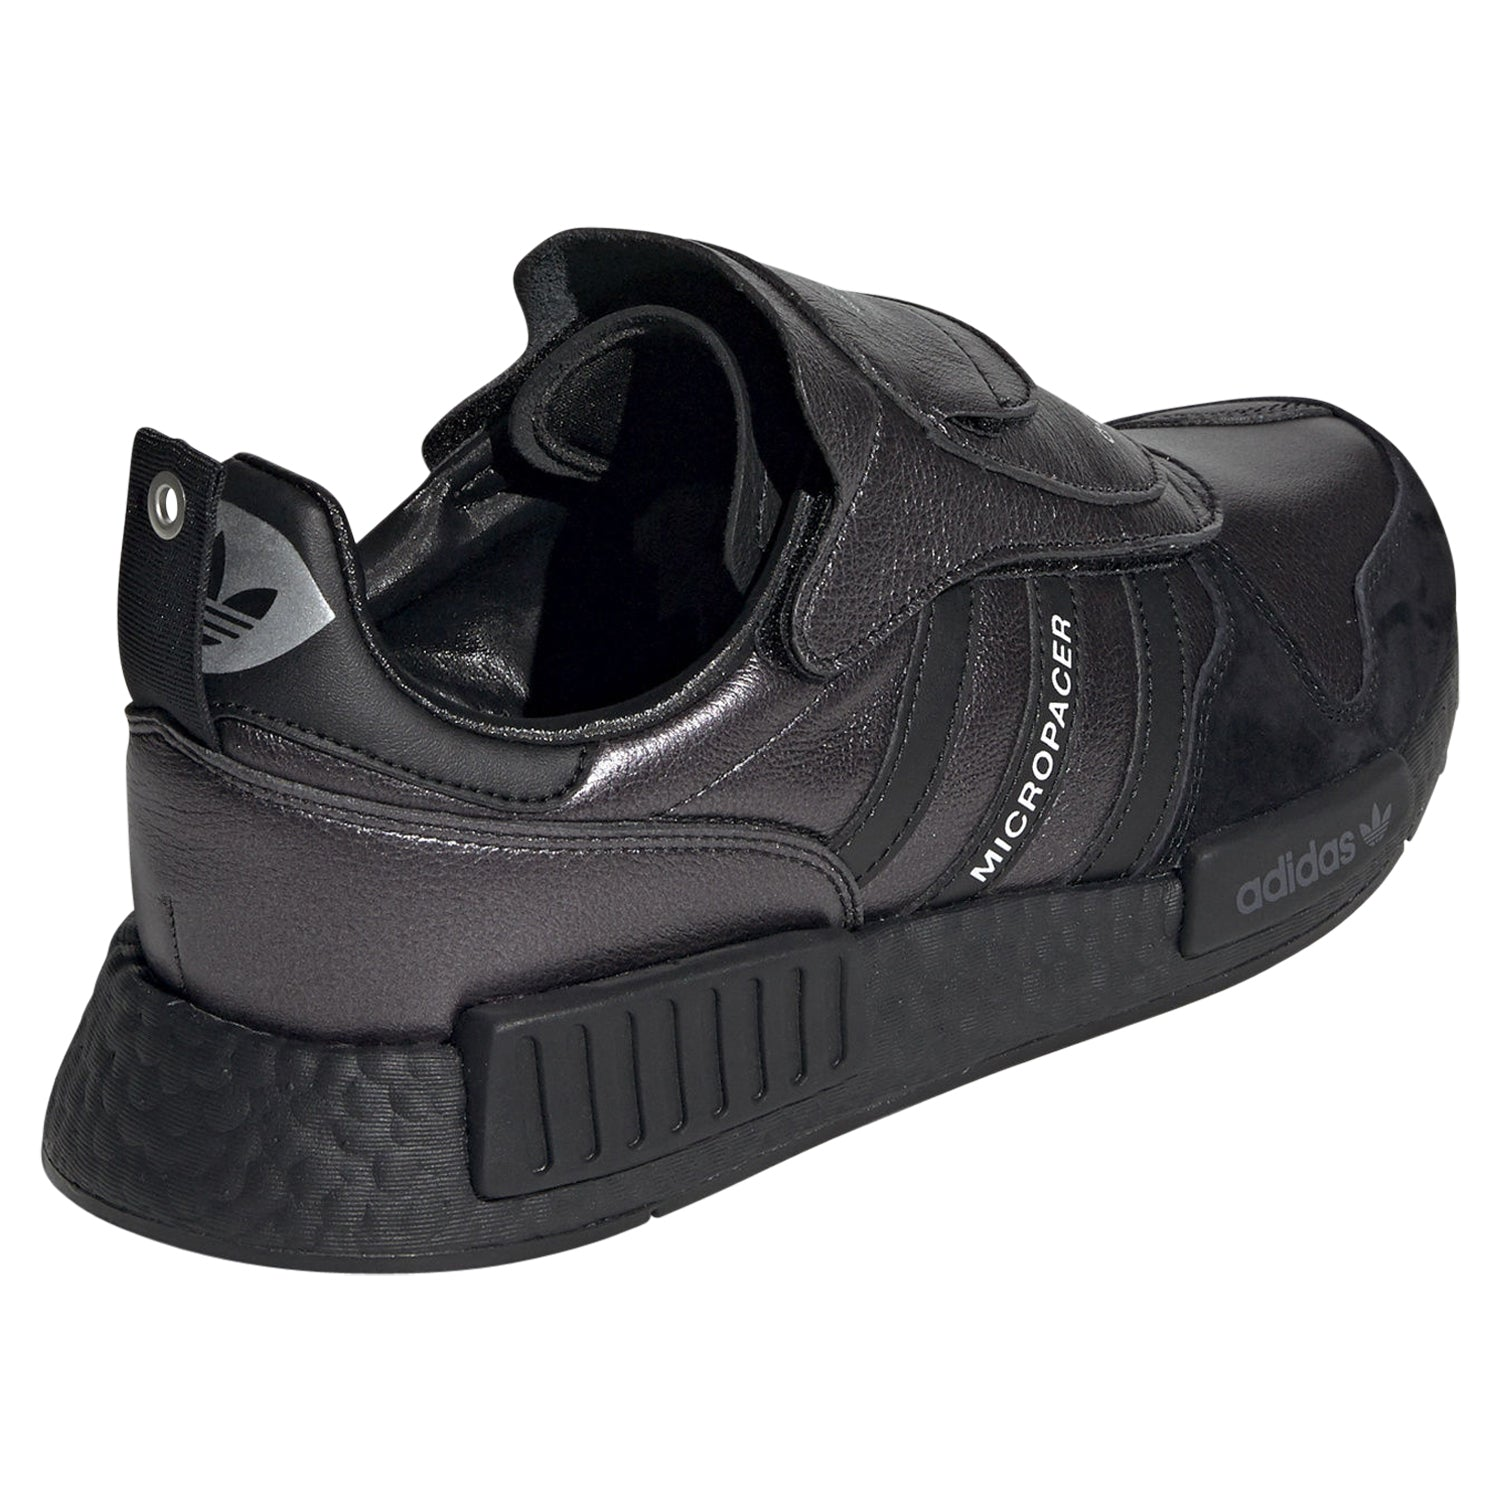 d80d753b1 tradesports.co.uk adidas Originals Micropacer x R1 Black Men s Trainers ...